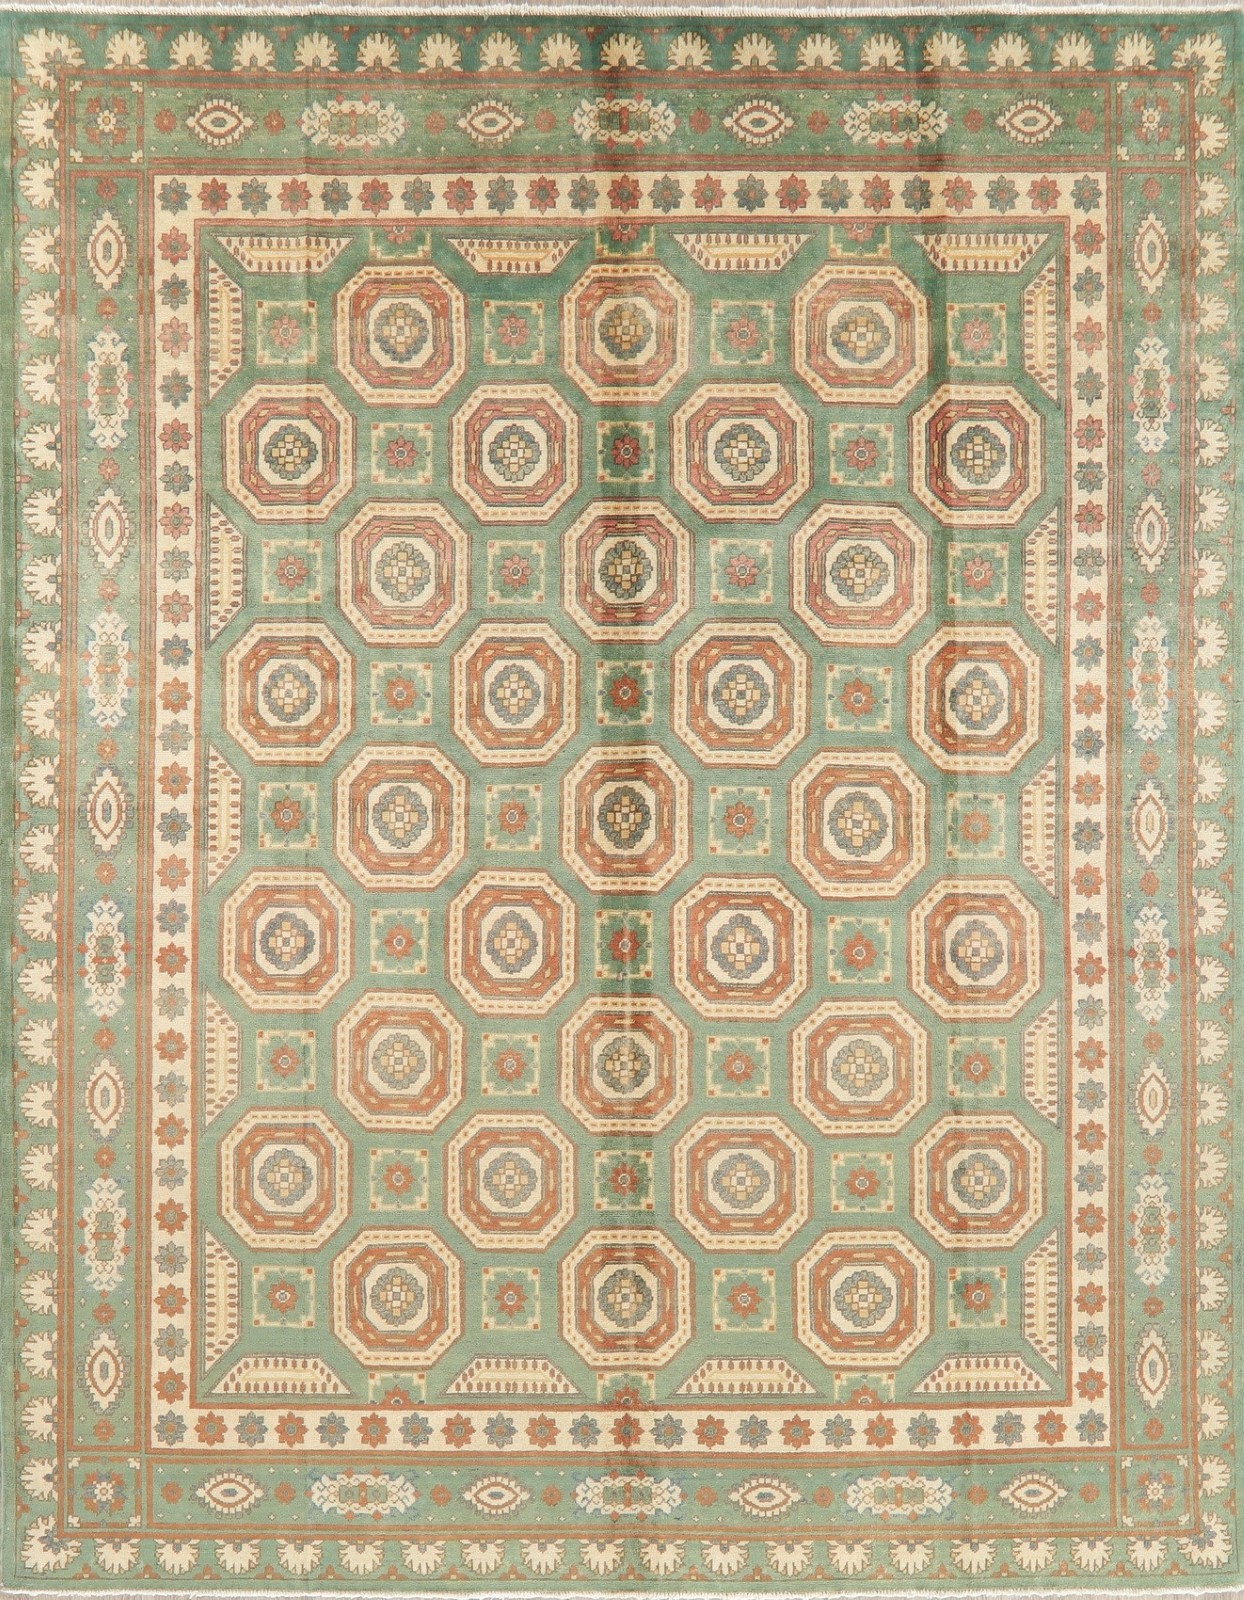 Details About Wool Geometric Super Kazak Emerald Green Rug Hand Knotted Oriental Area Rug 8x10